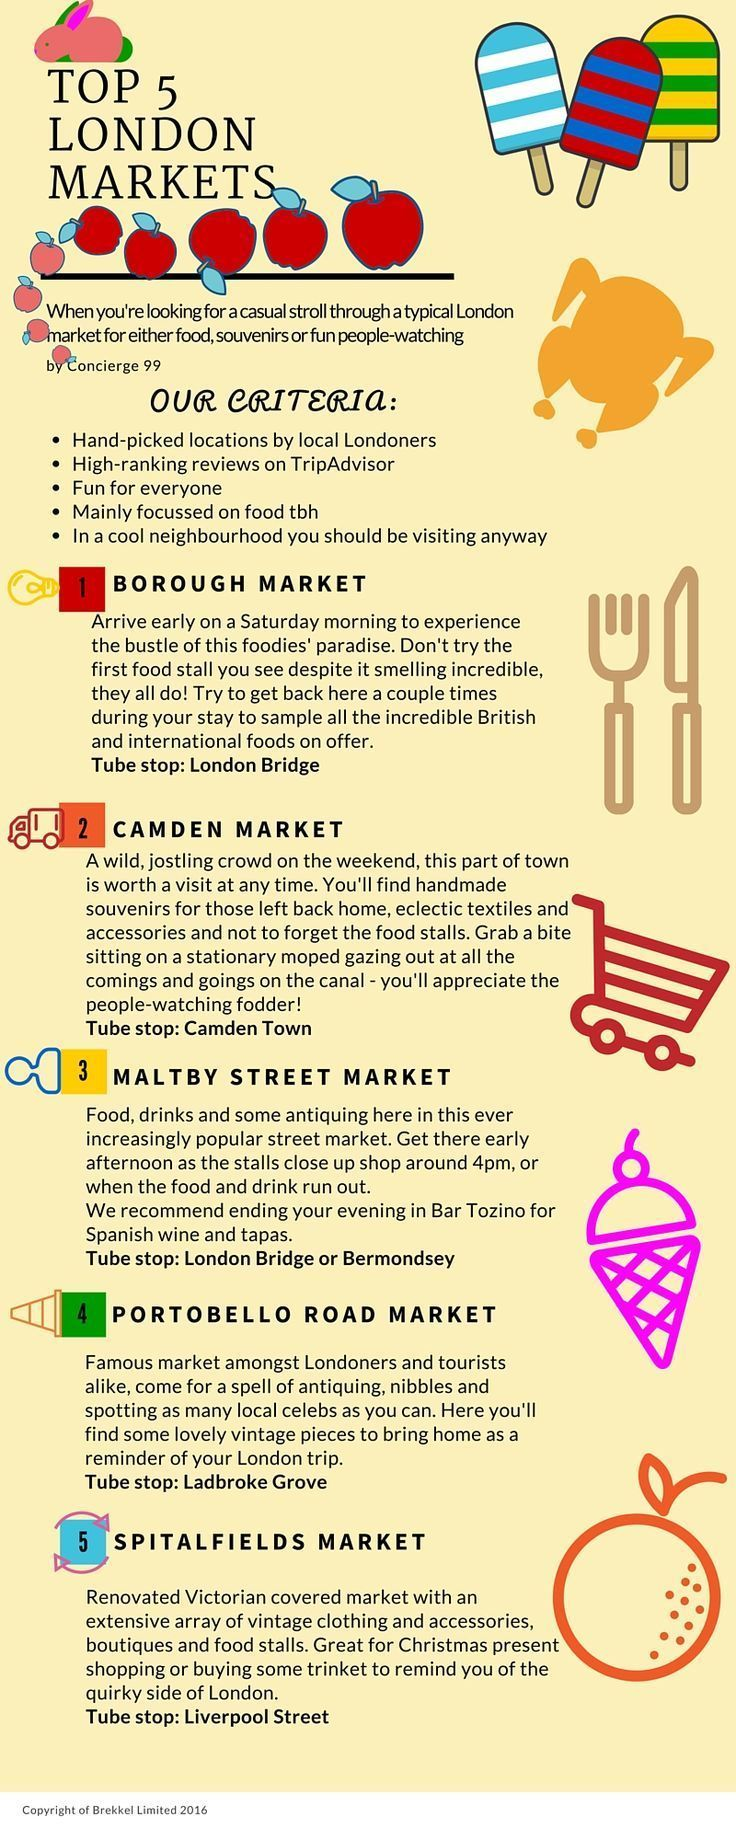 When you're looking for a casual stroll through a typical London market for either food, souvenirs or fun people-watching. Top 5 Guide Best Markets in London Best Things to Do in London Best Things to